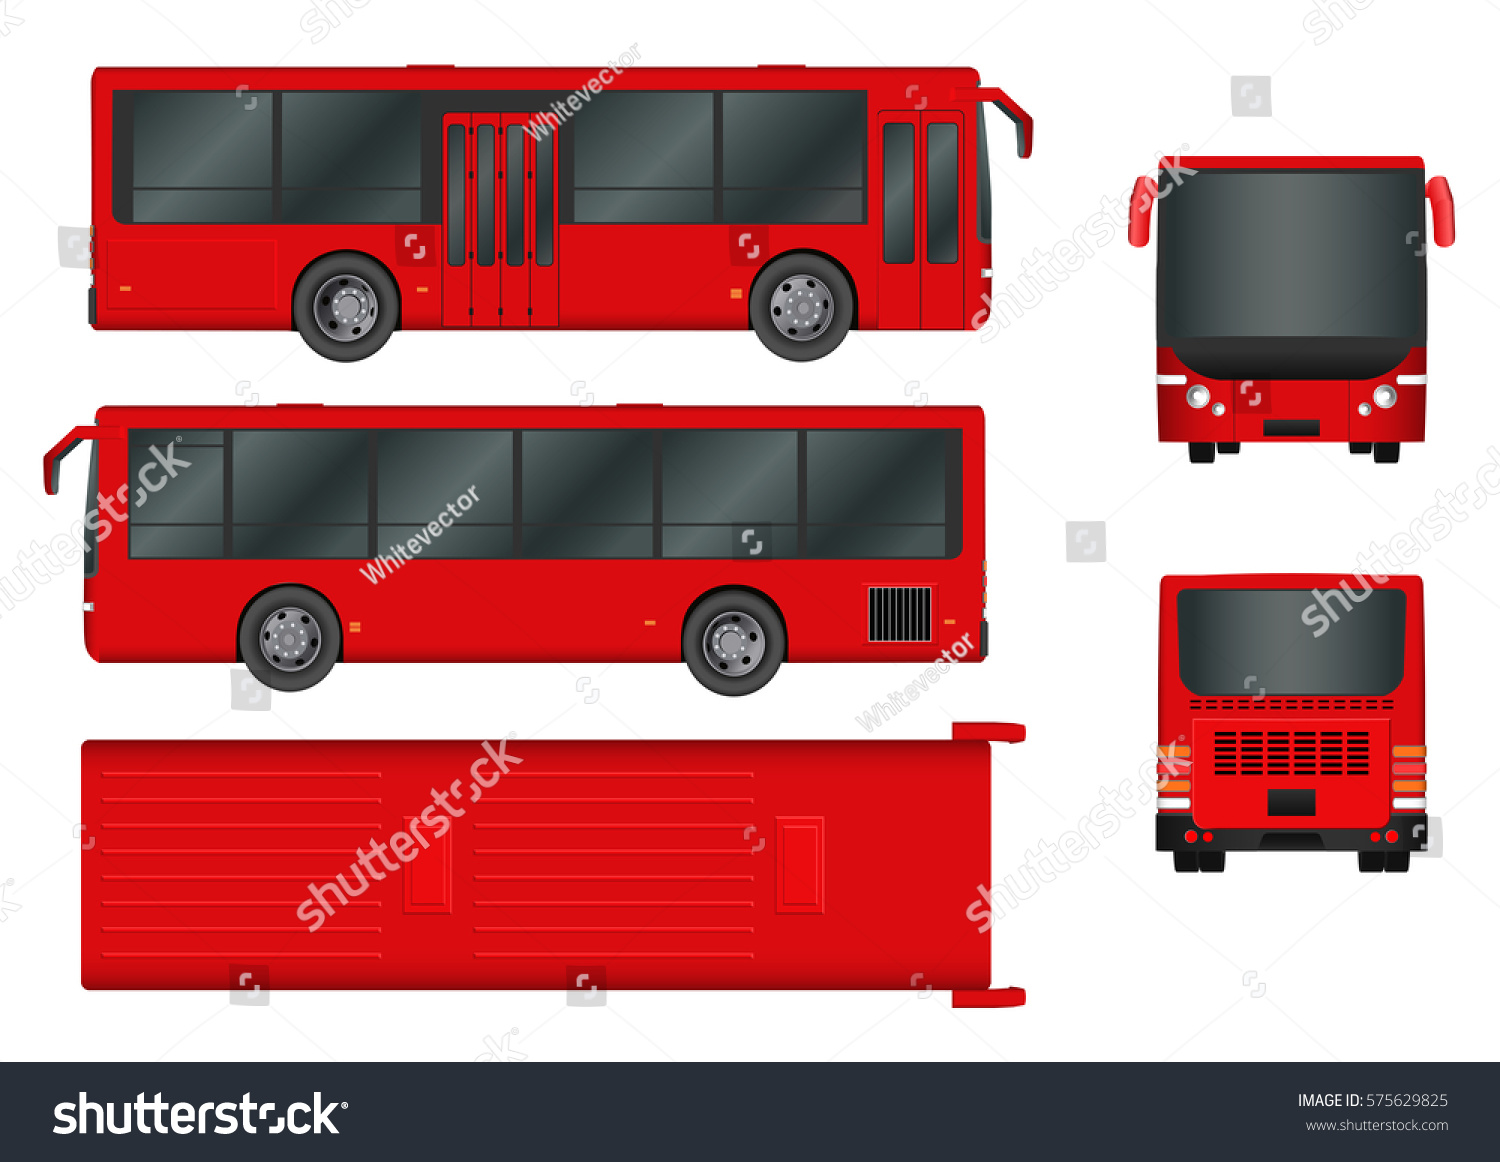 Red City Bus Template Passenger Transport Stock Vector ...